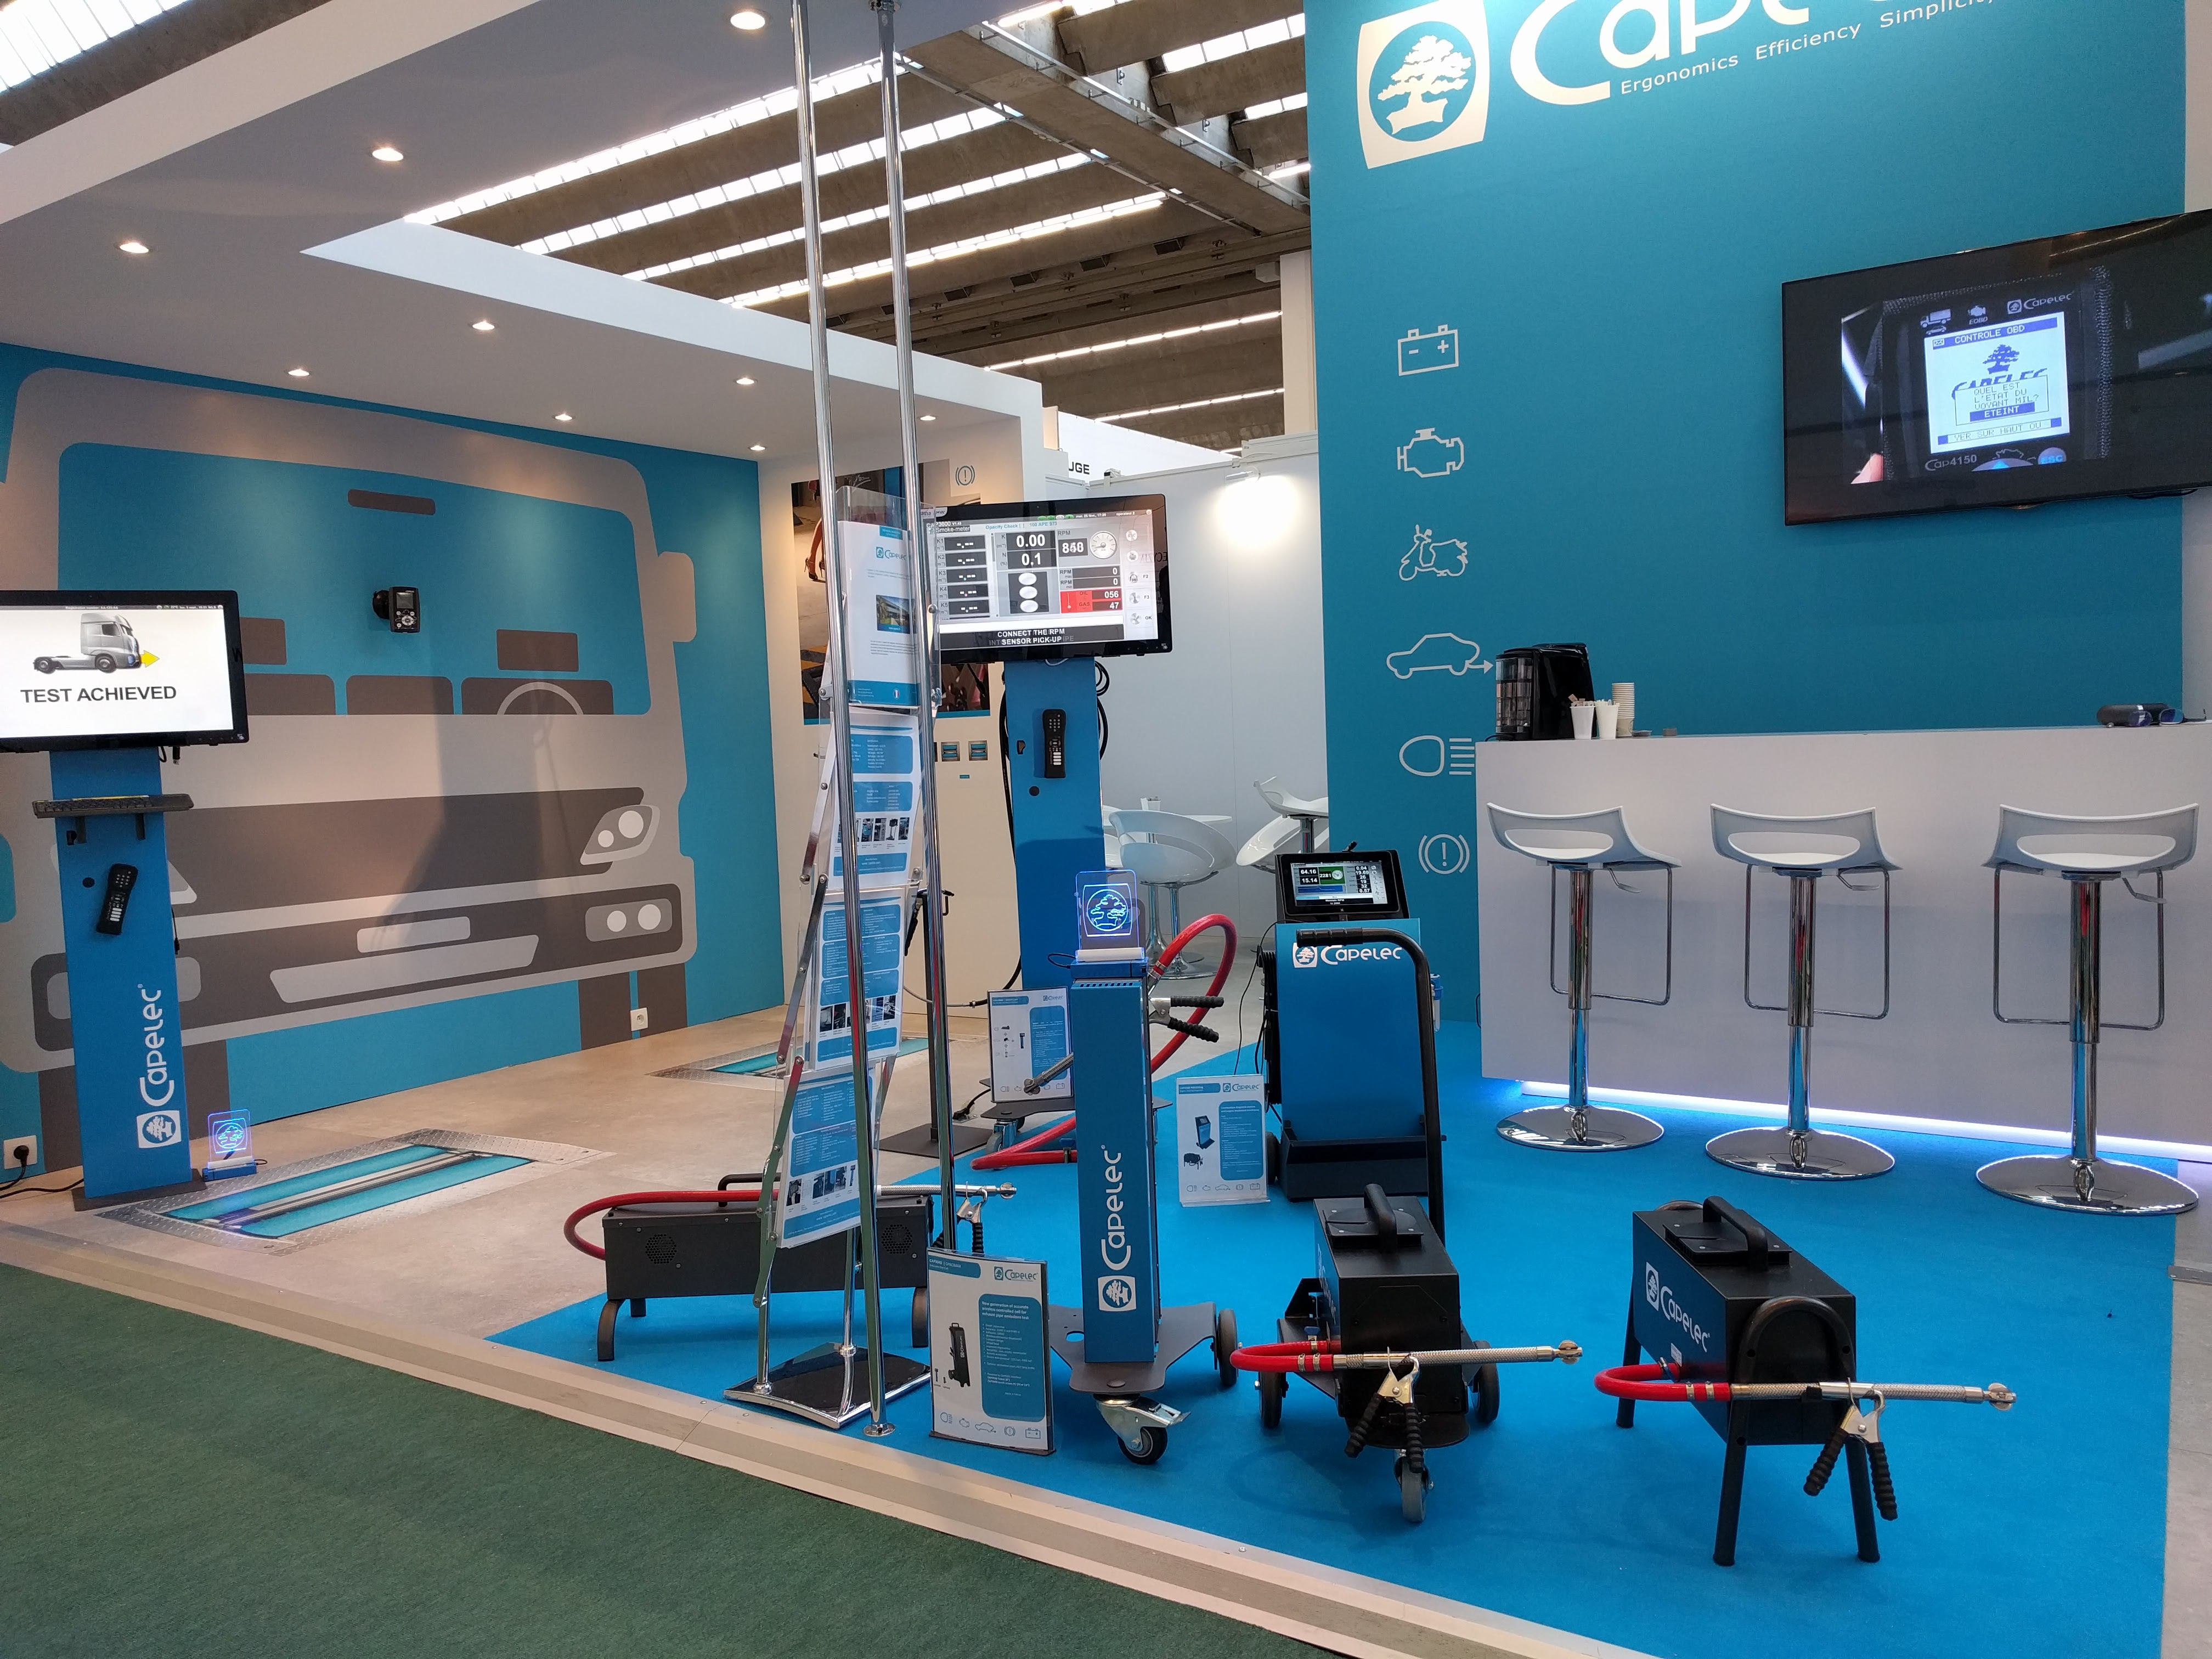 CAPELEC Automechanika 2016